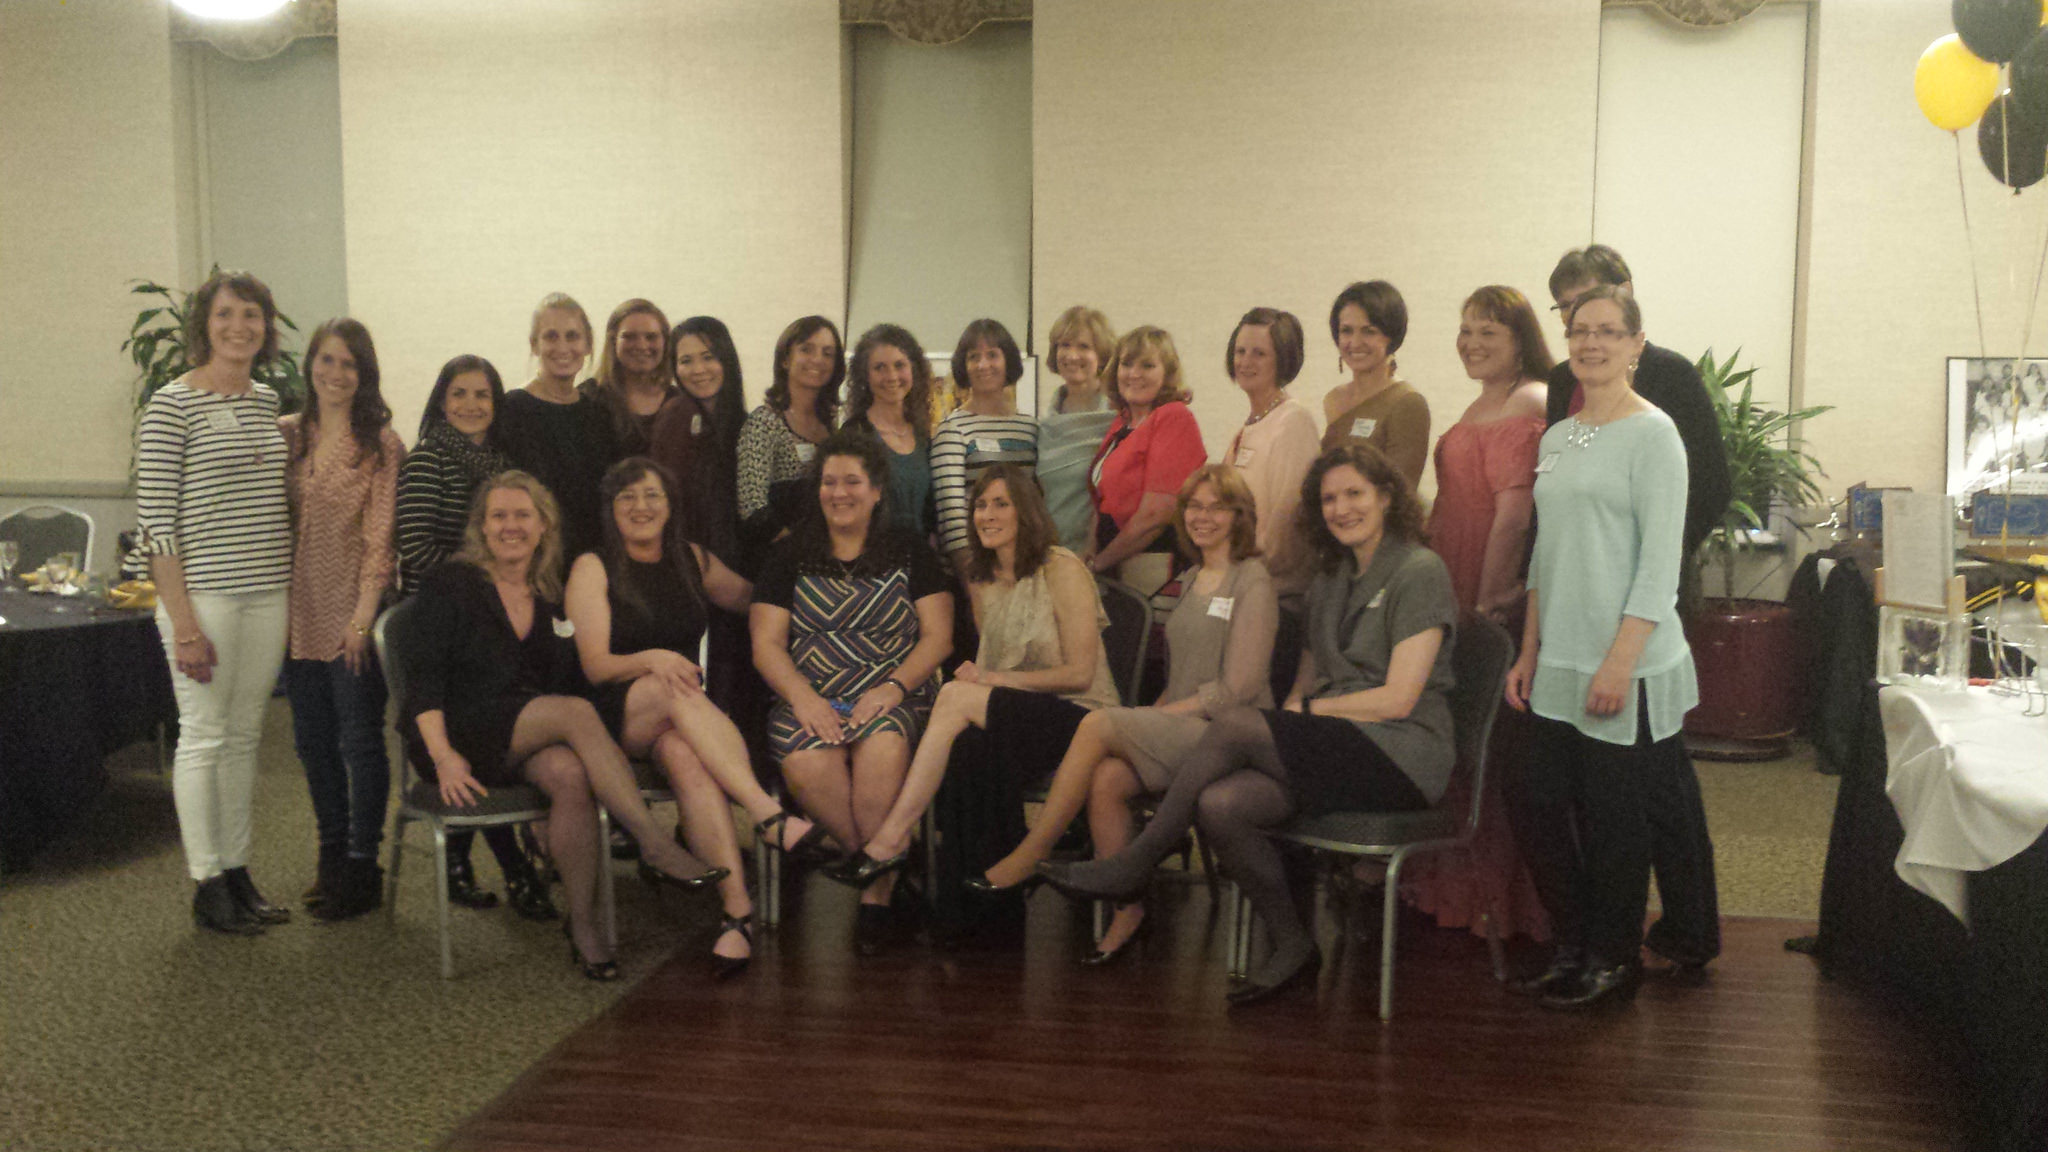 Athletes from the inaugural women's reunion, held April 1, 2017